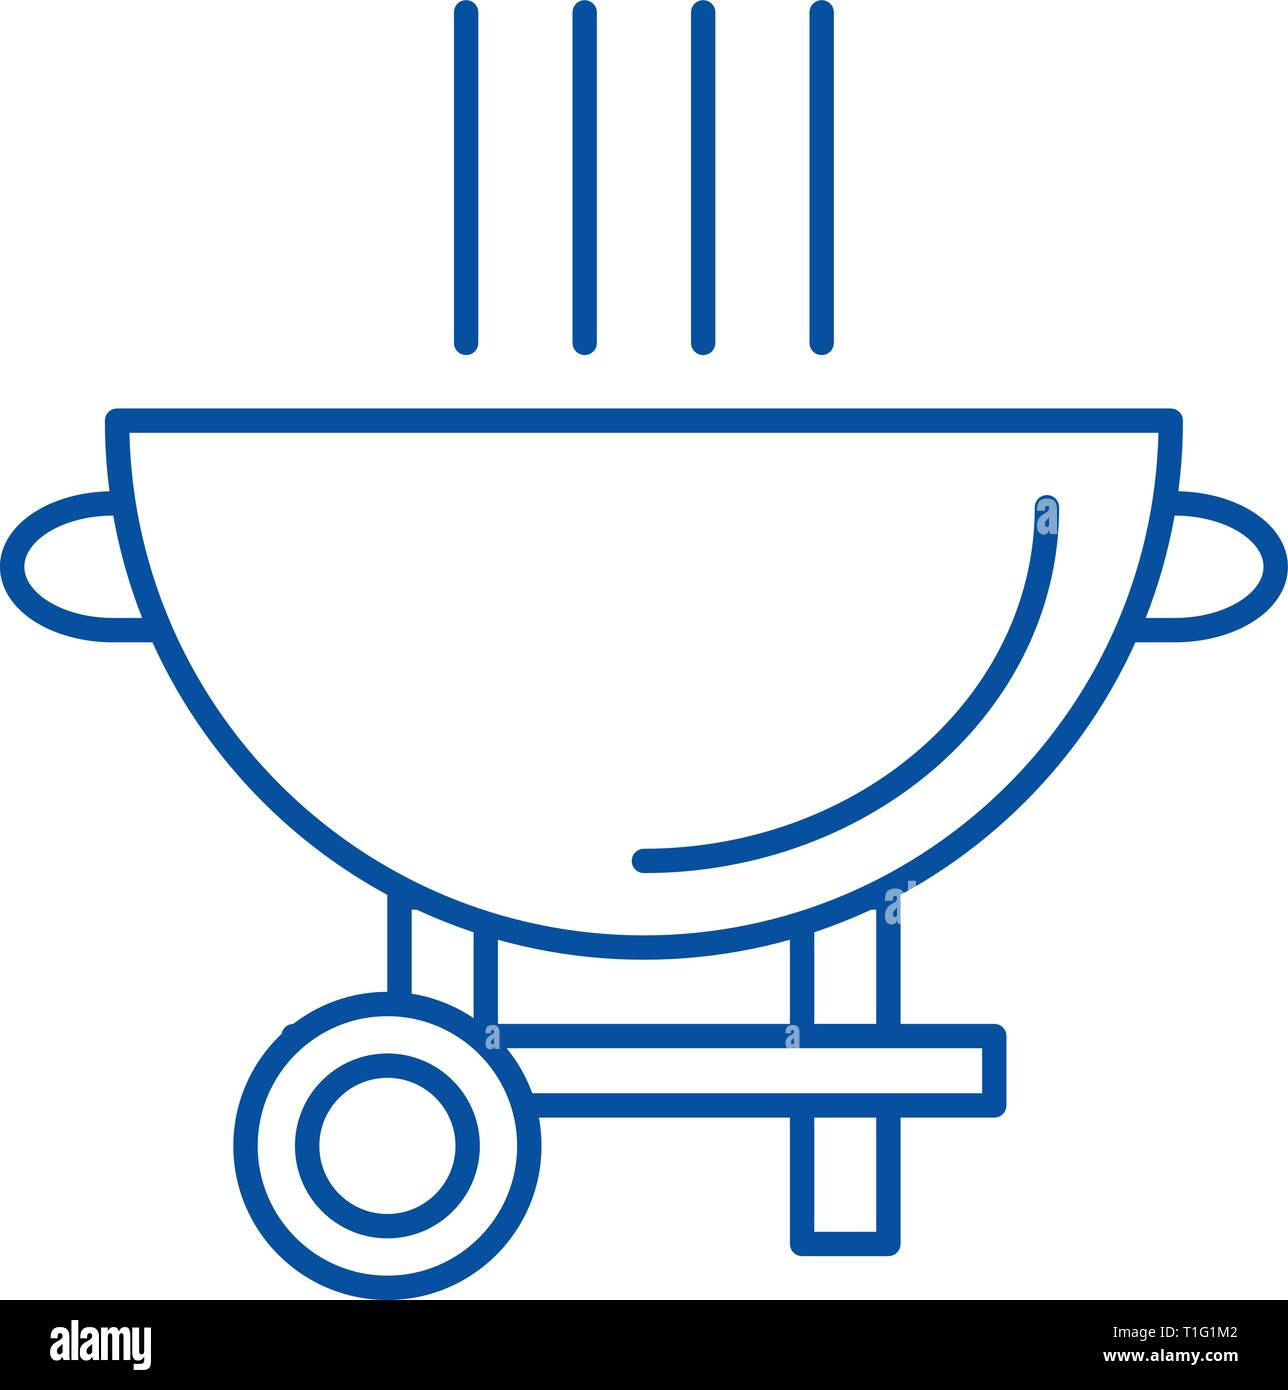 Barbecue grill line icon concept. Barbecue grill flat  vector symbol, sign, outline illustration. - Stock Vector